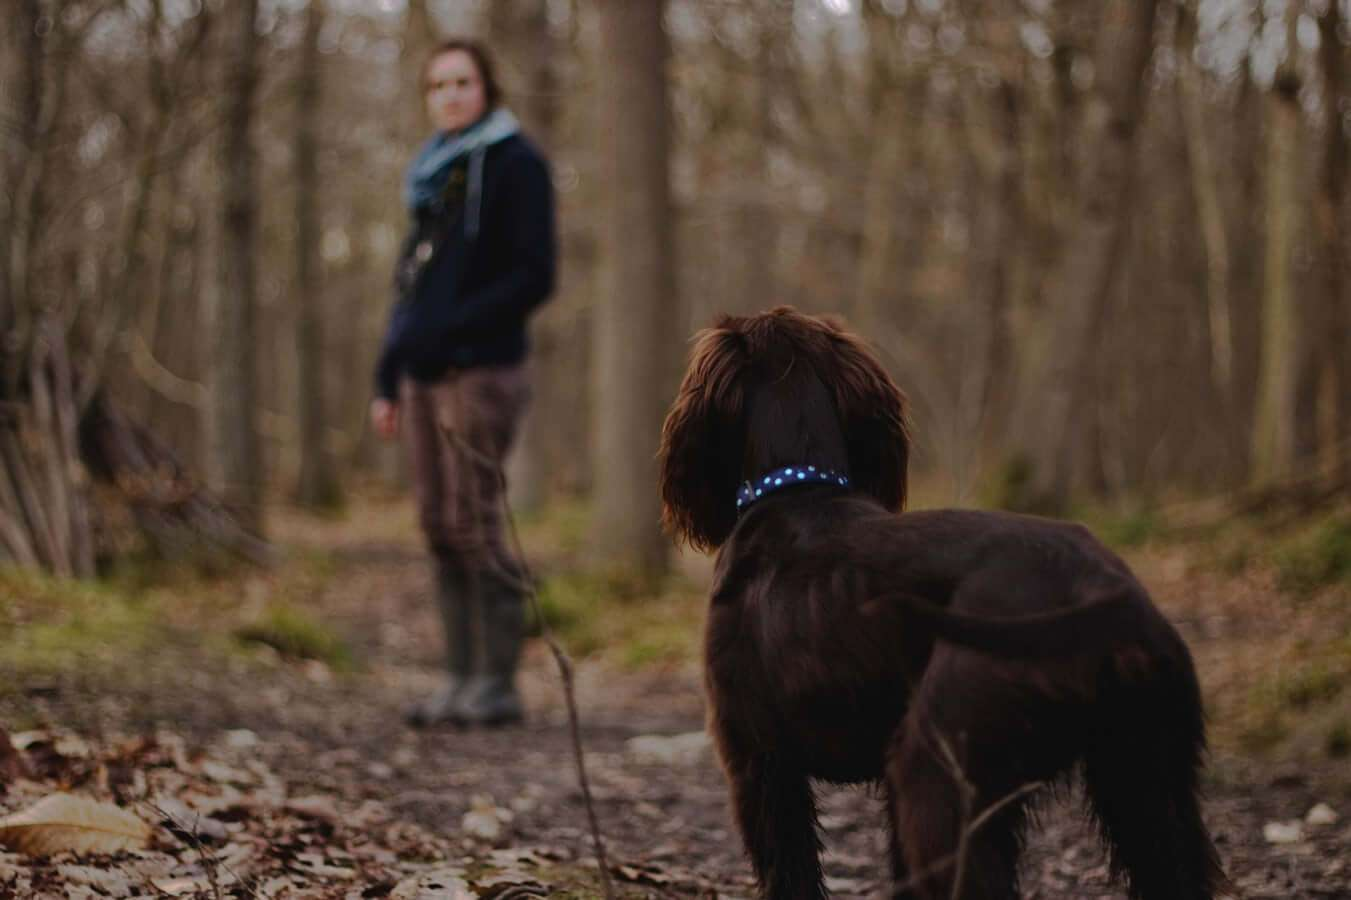 Woman outdoors walking her dog. Being active is important to staying healthy.